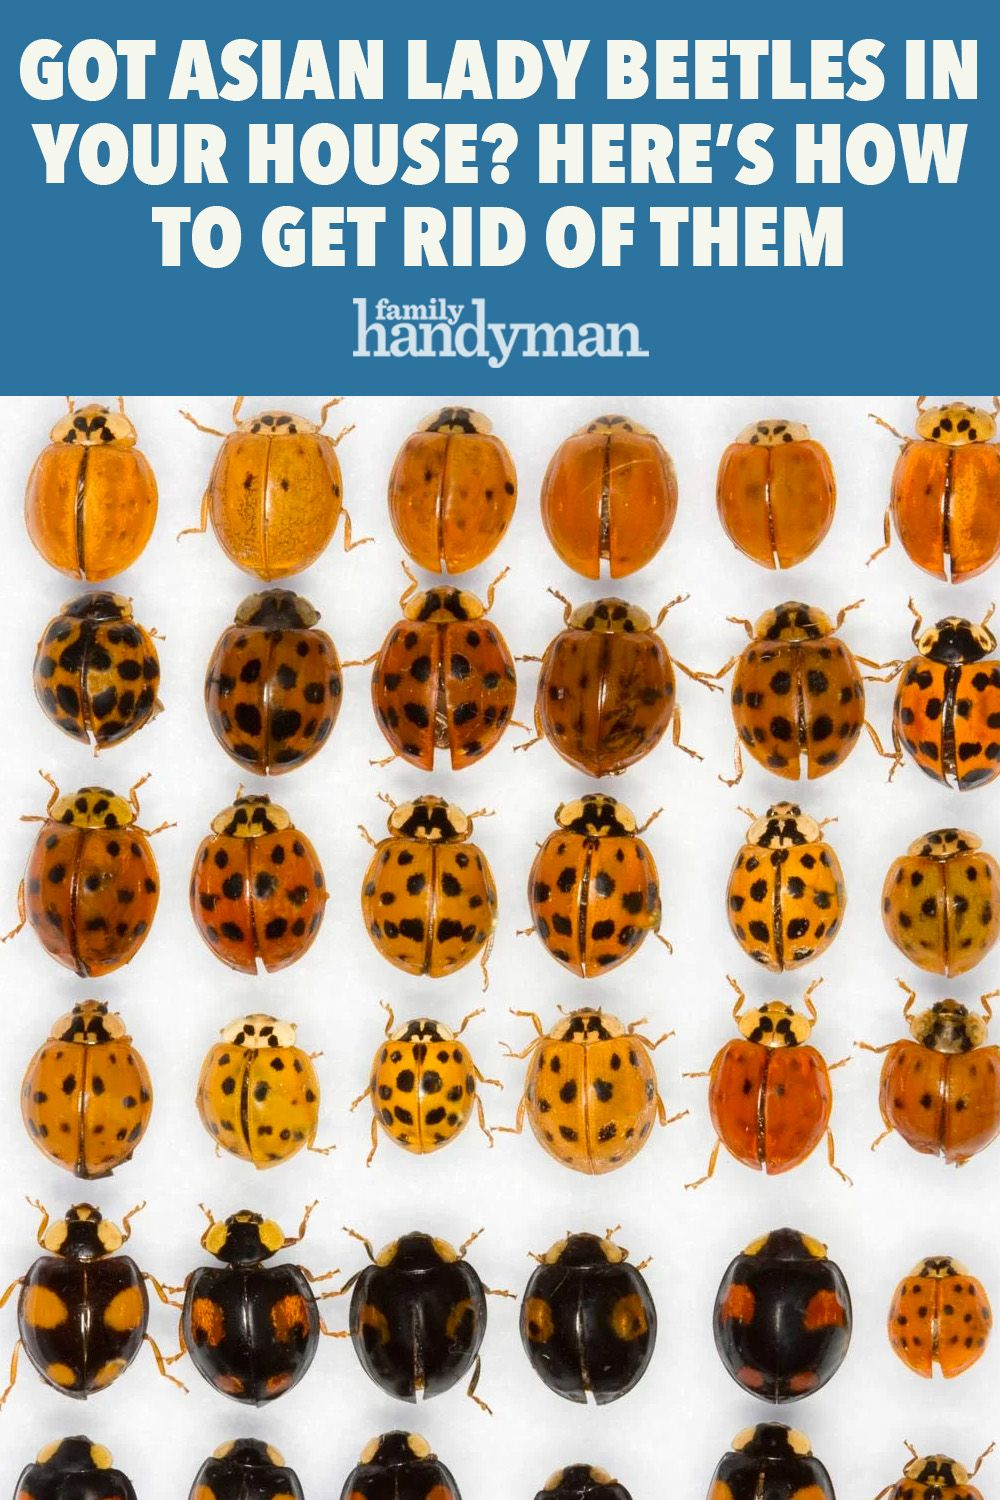 The Most Annoying Fall Pests And How To Manage Them Lady Beetle Asian Beetle Beetle